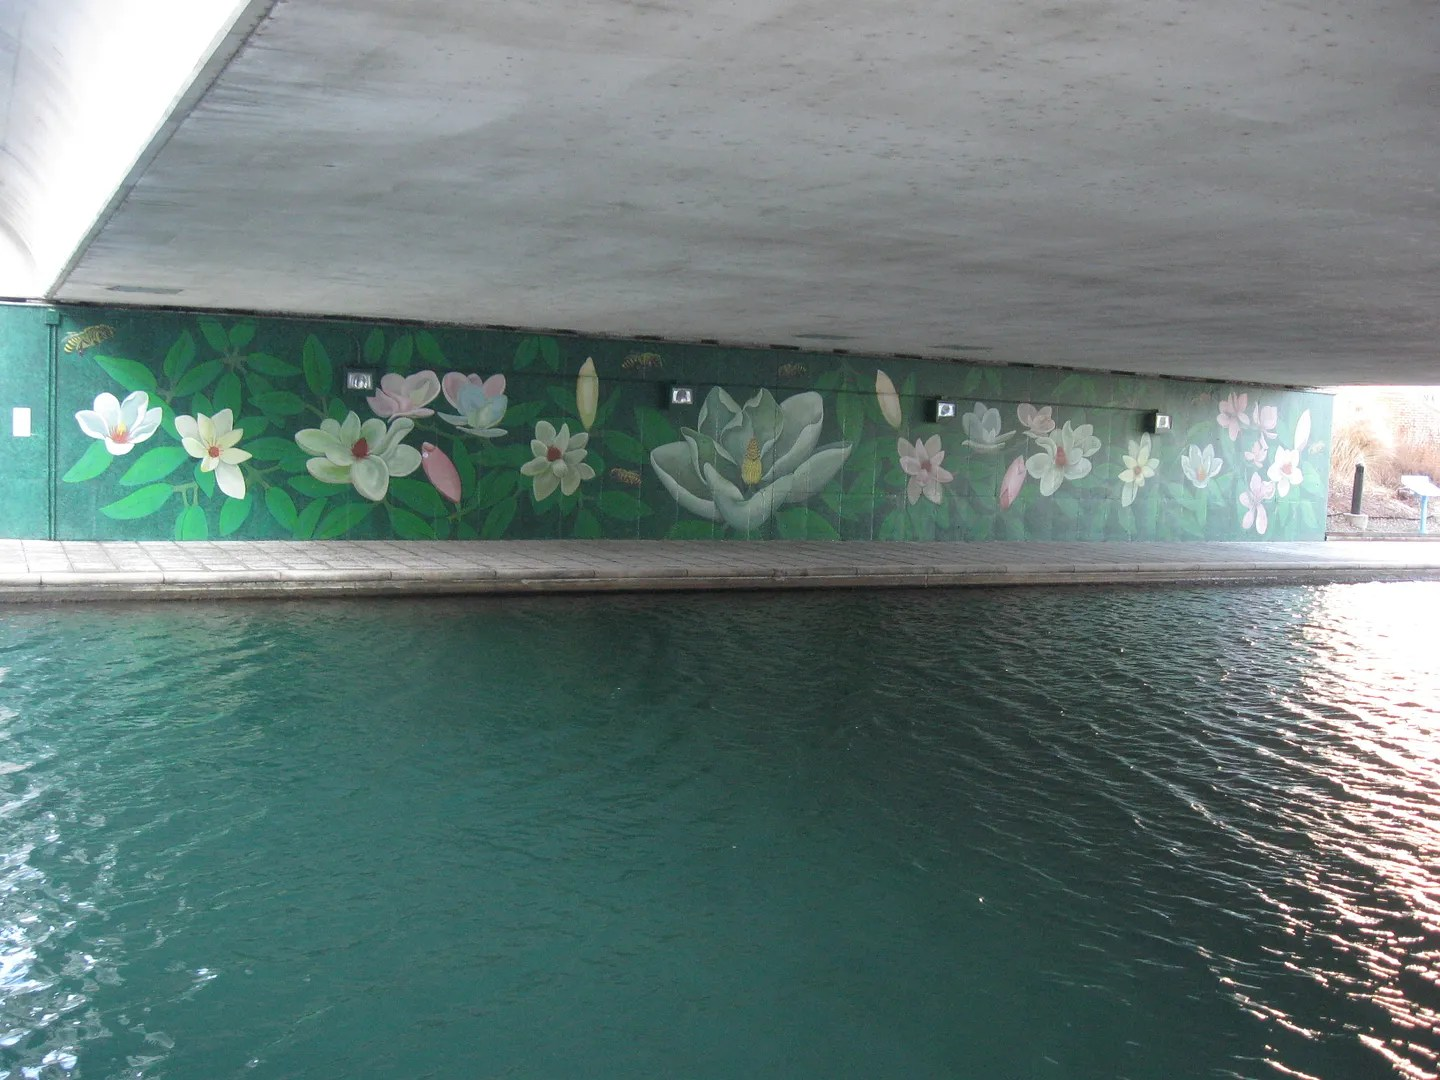 46 for XLVI, Green Mural, White River Canal